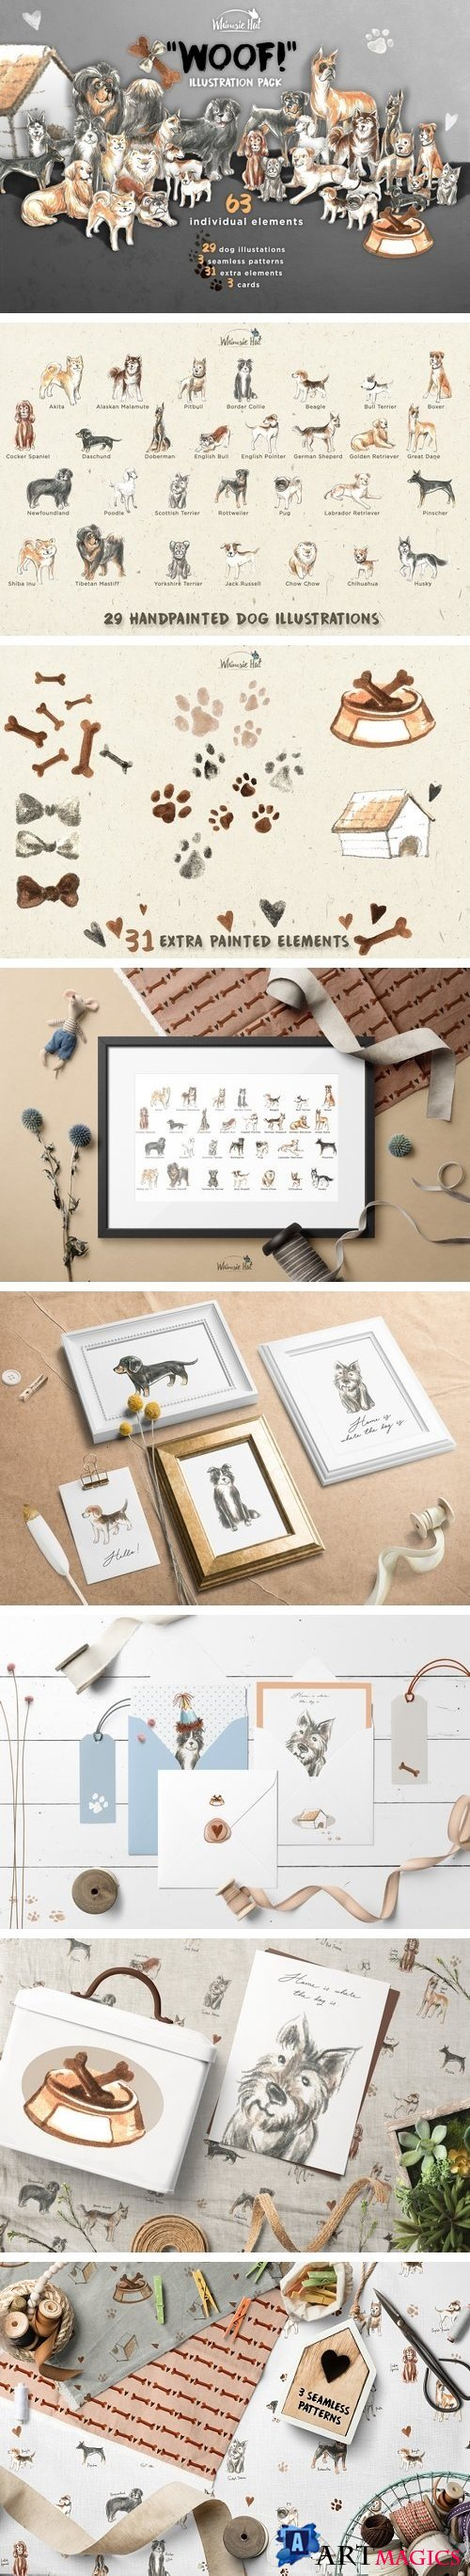 'Woof!' illustration pack - 2108491